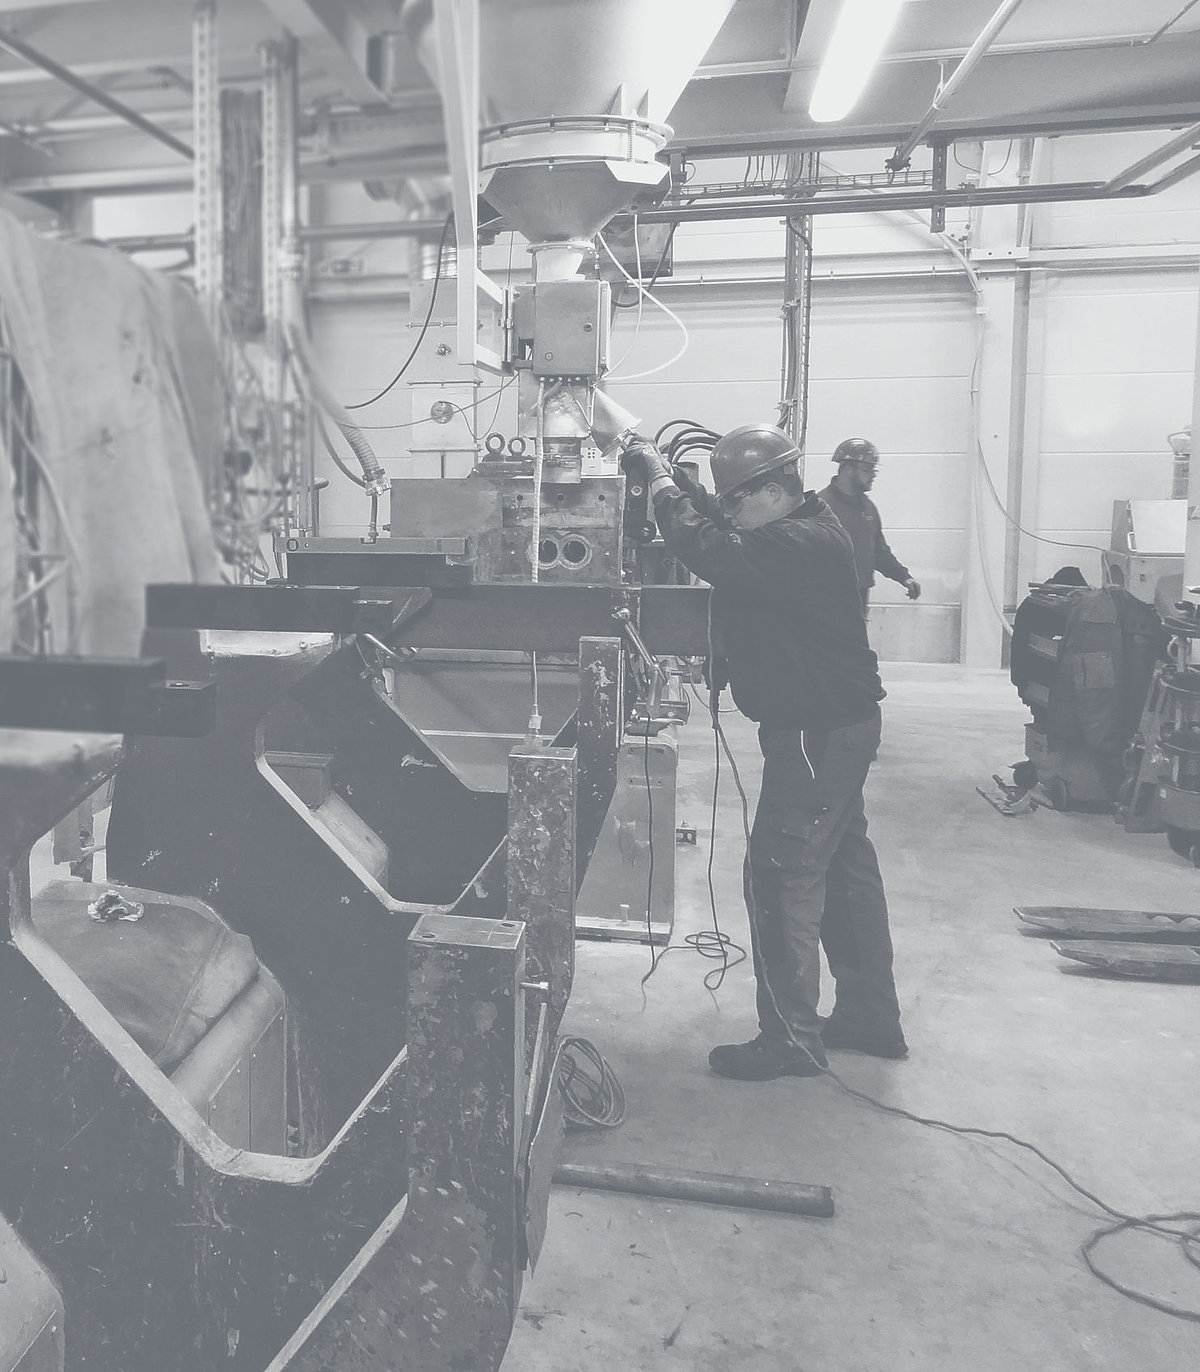 Employee in a workshop operates a machine